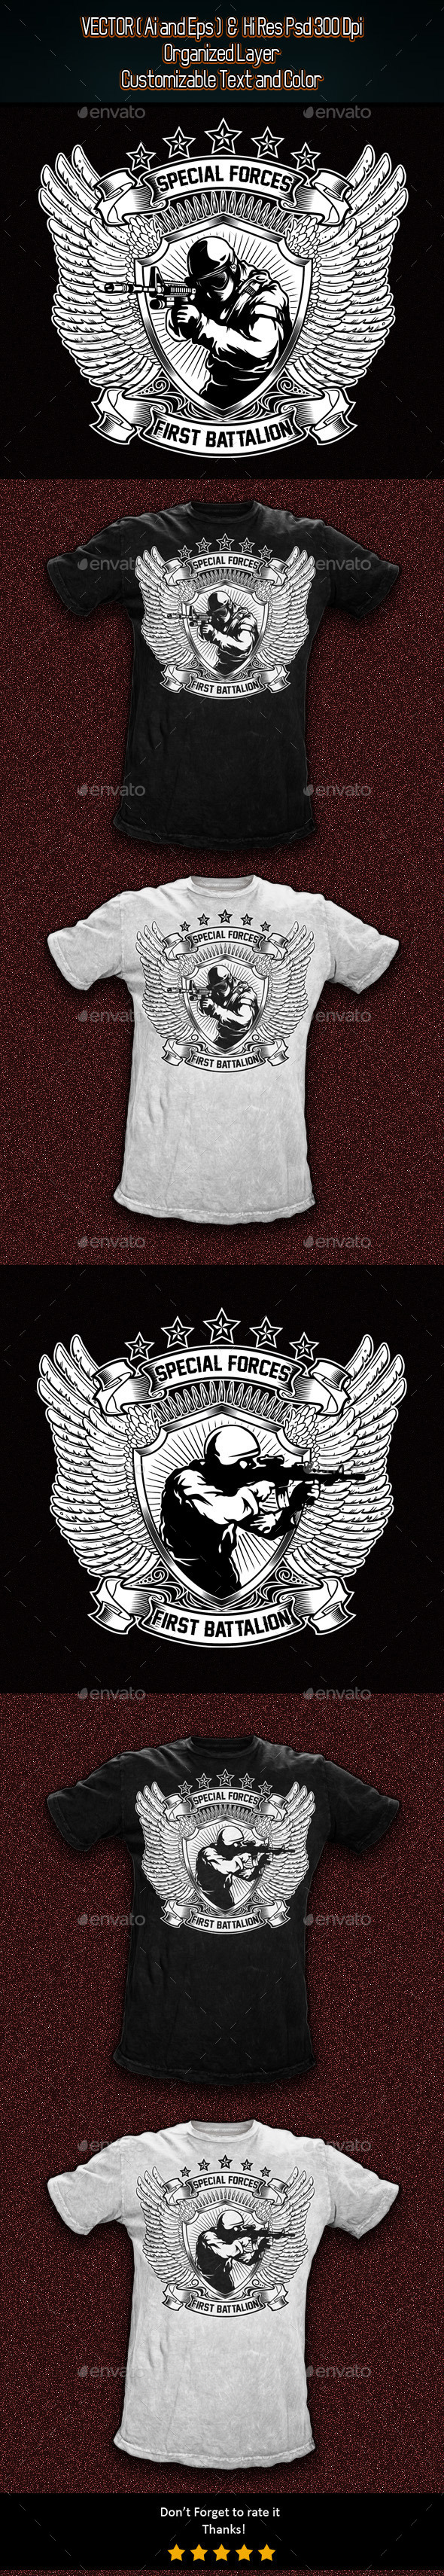 2 Military T-Shirt Template - Designs T-Shirts